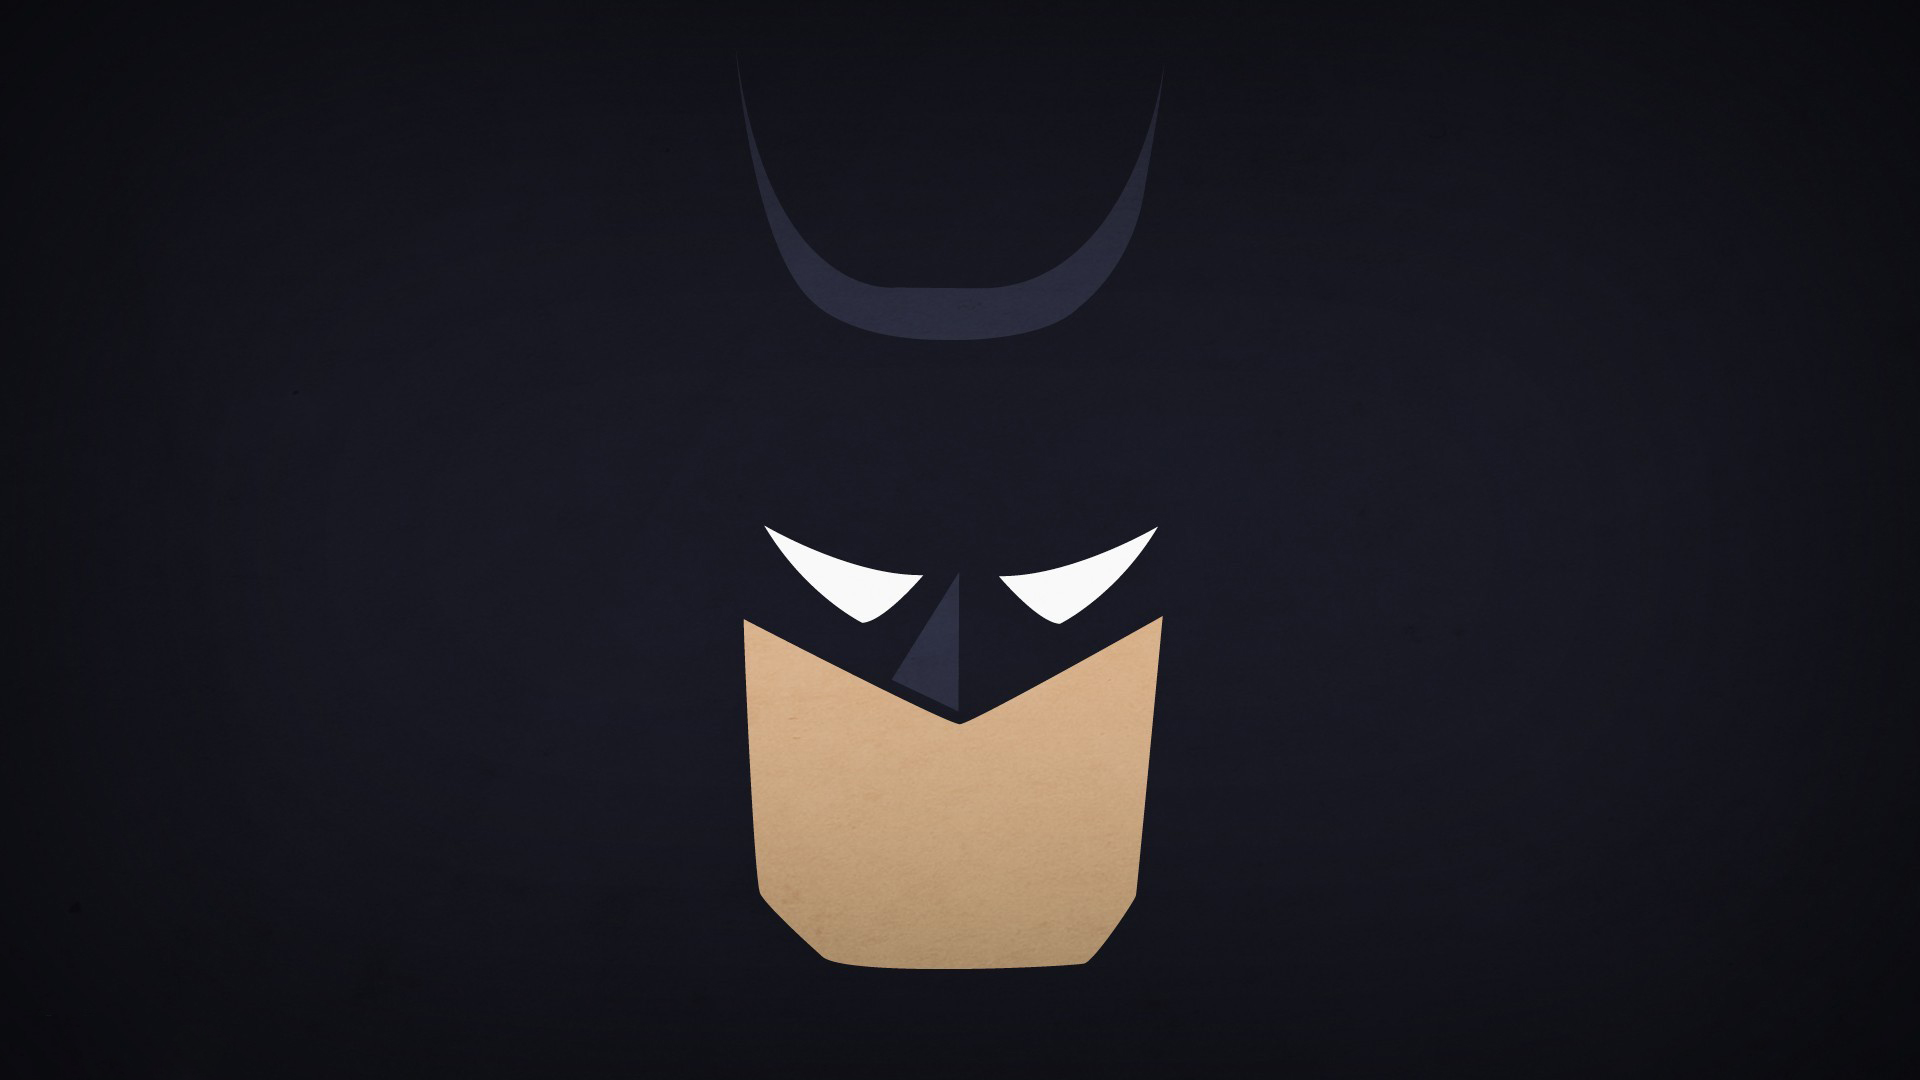 wallpapers batman desktop cartoon 1920x1080 1920x1080